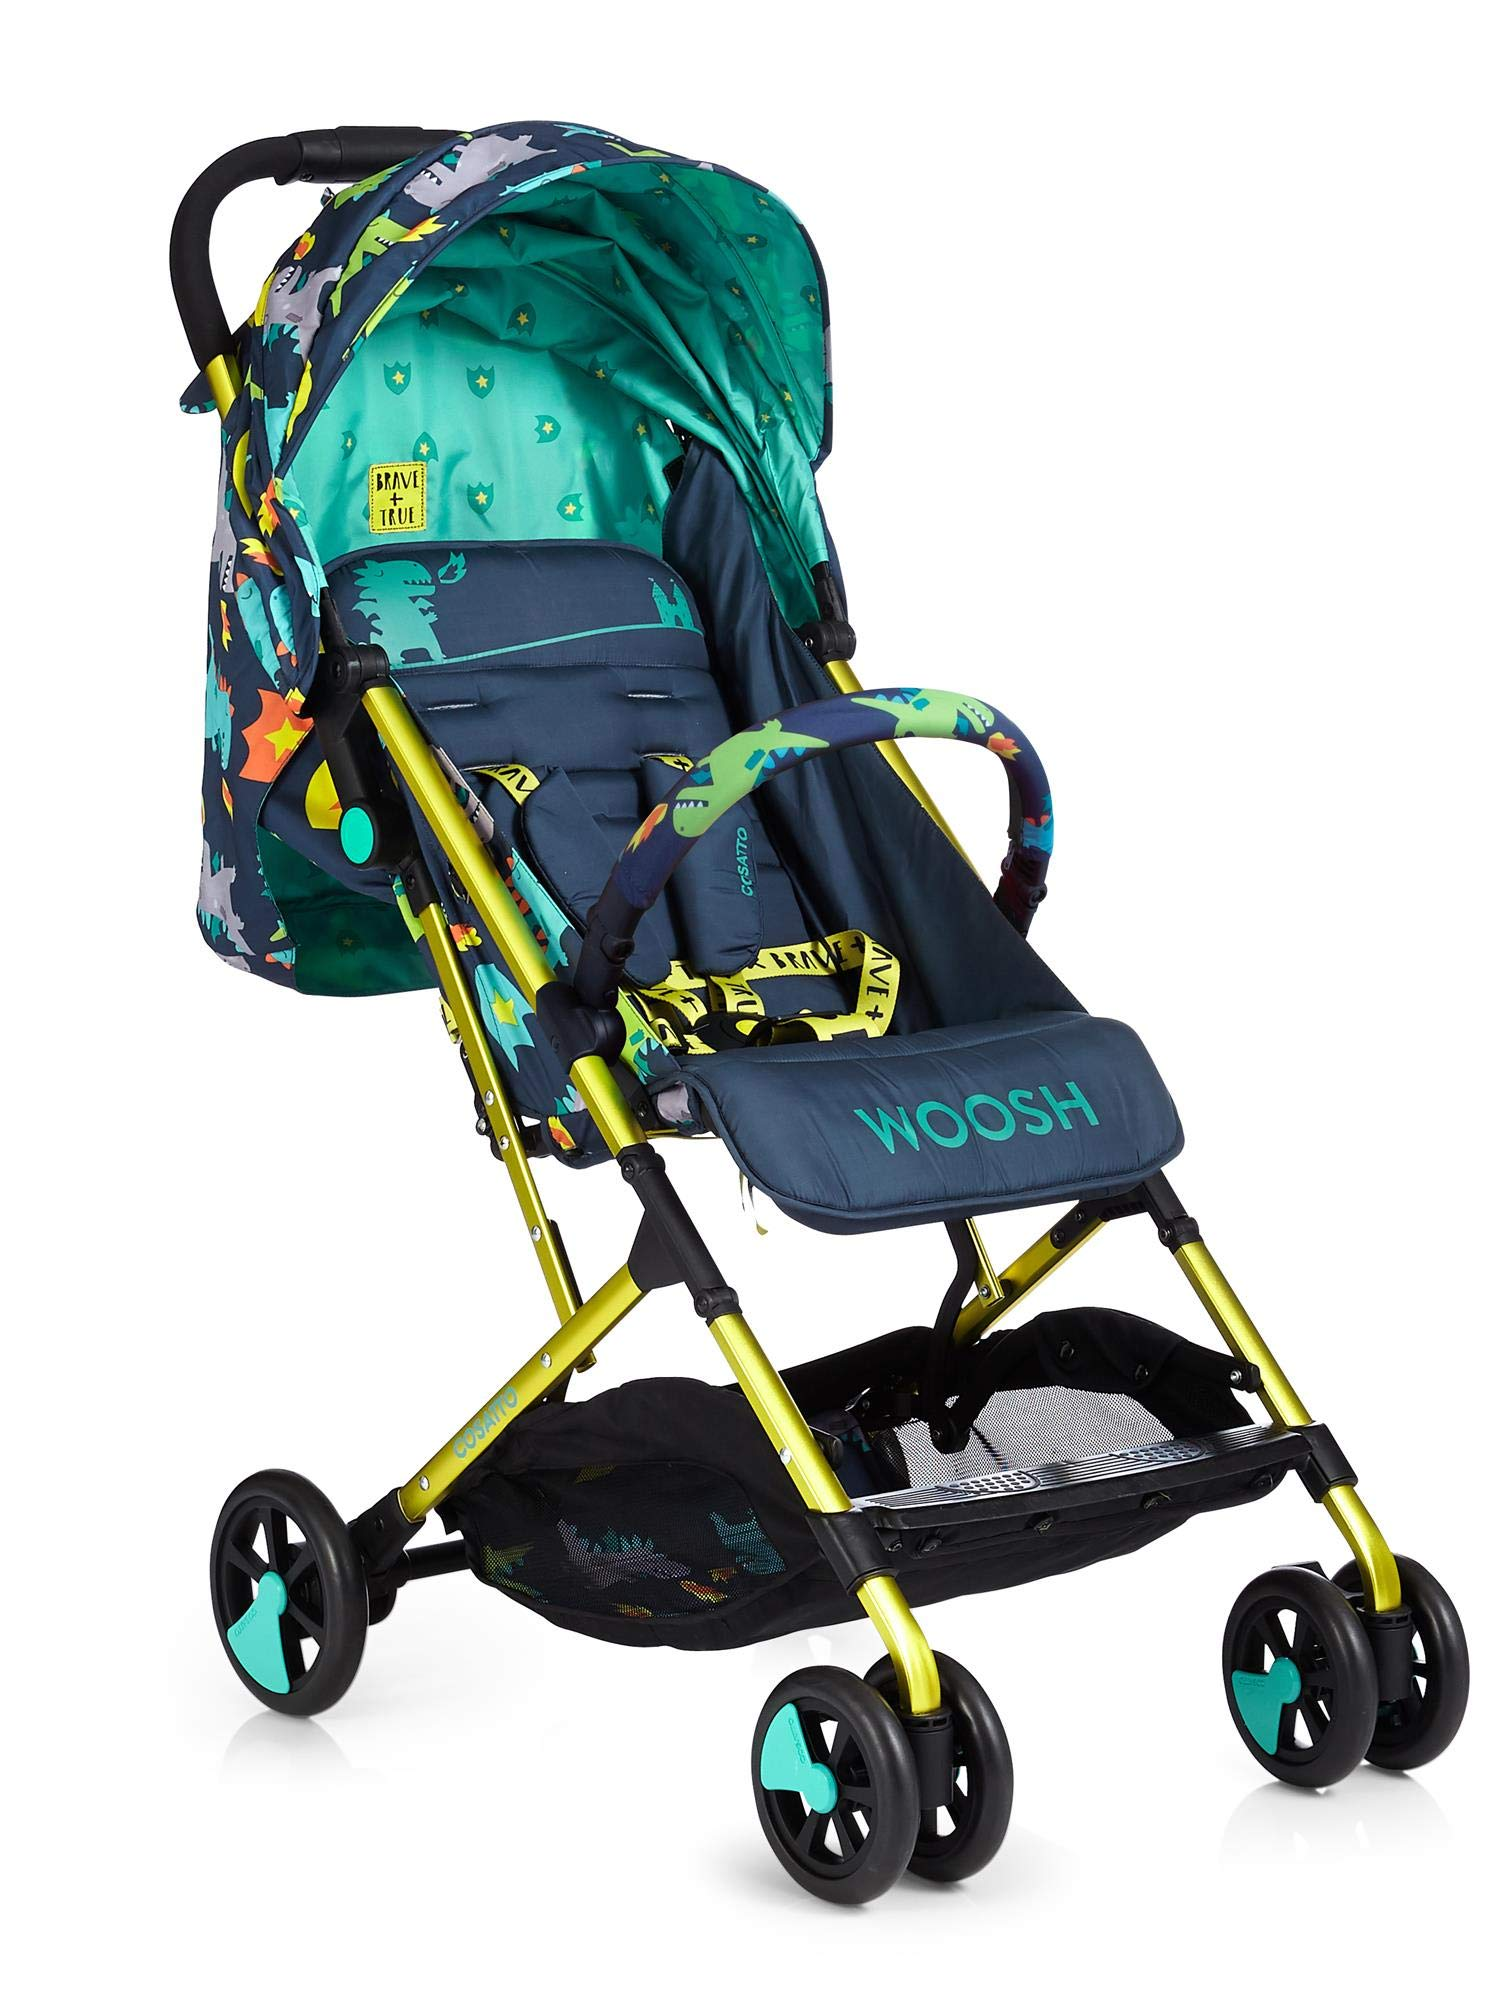 Cosatto CT4253 Woosh 2 Dragon Kingdom 7.2 kg Cosatto Suitable from birth to max weight of 25kg, lets your toddler use it for even longer Lightweight, sturdy aluminium frame New-born recline 3